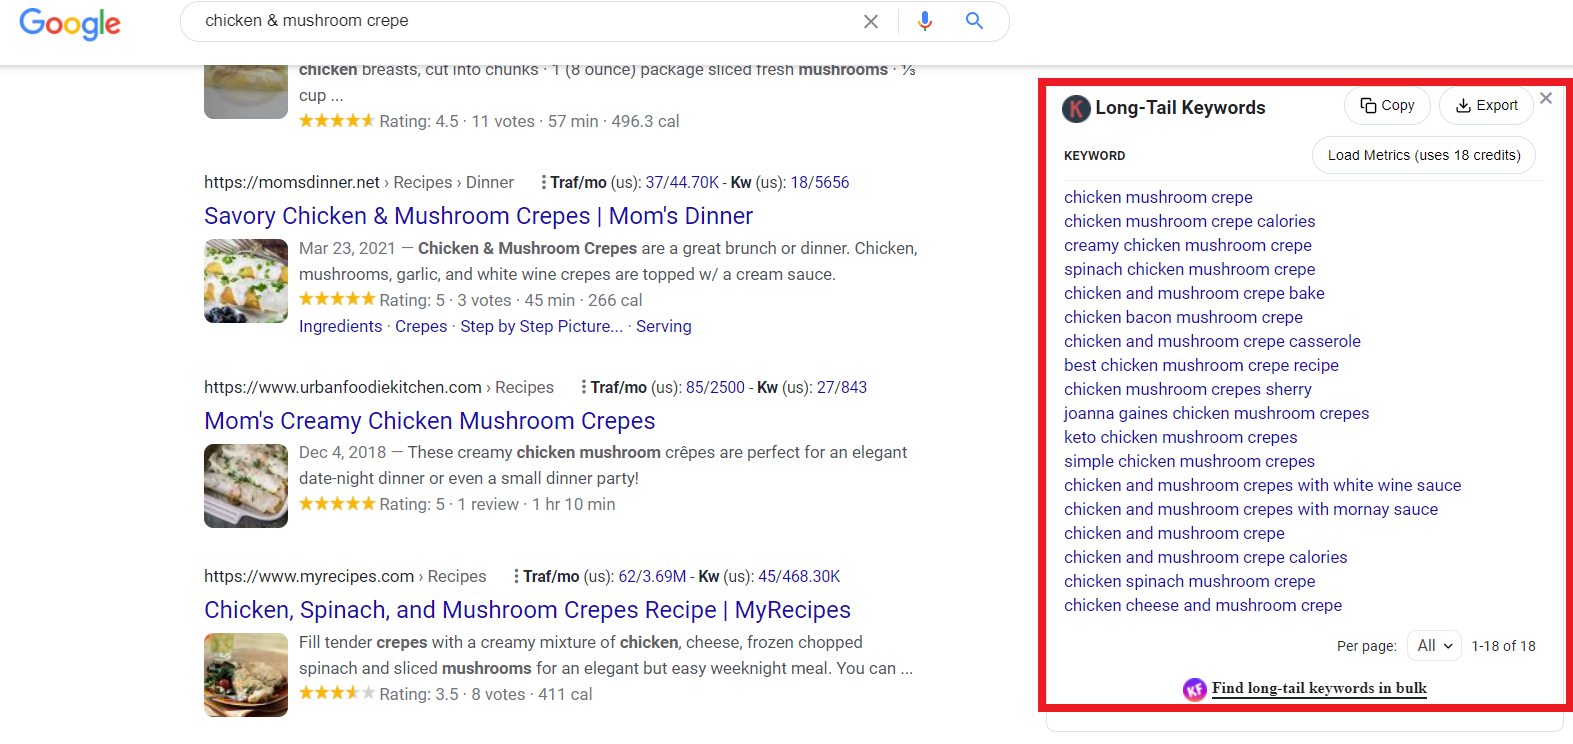 Search engine results page for chicken & mushroom crepe with Keywords Everywhere extension